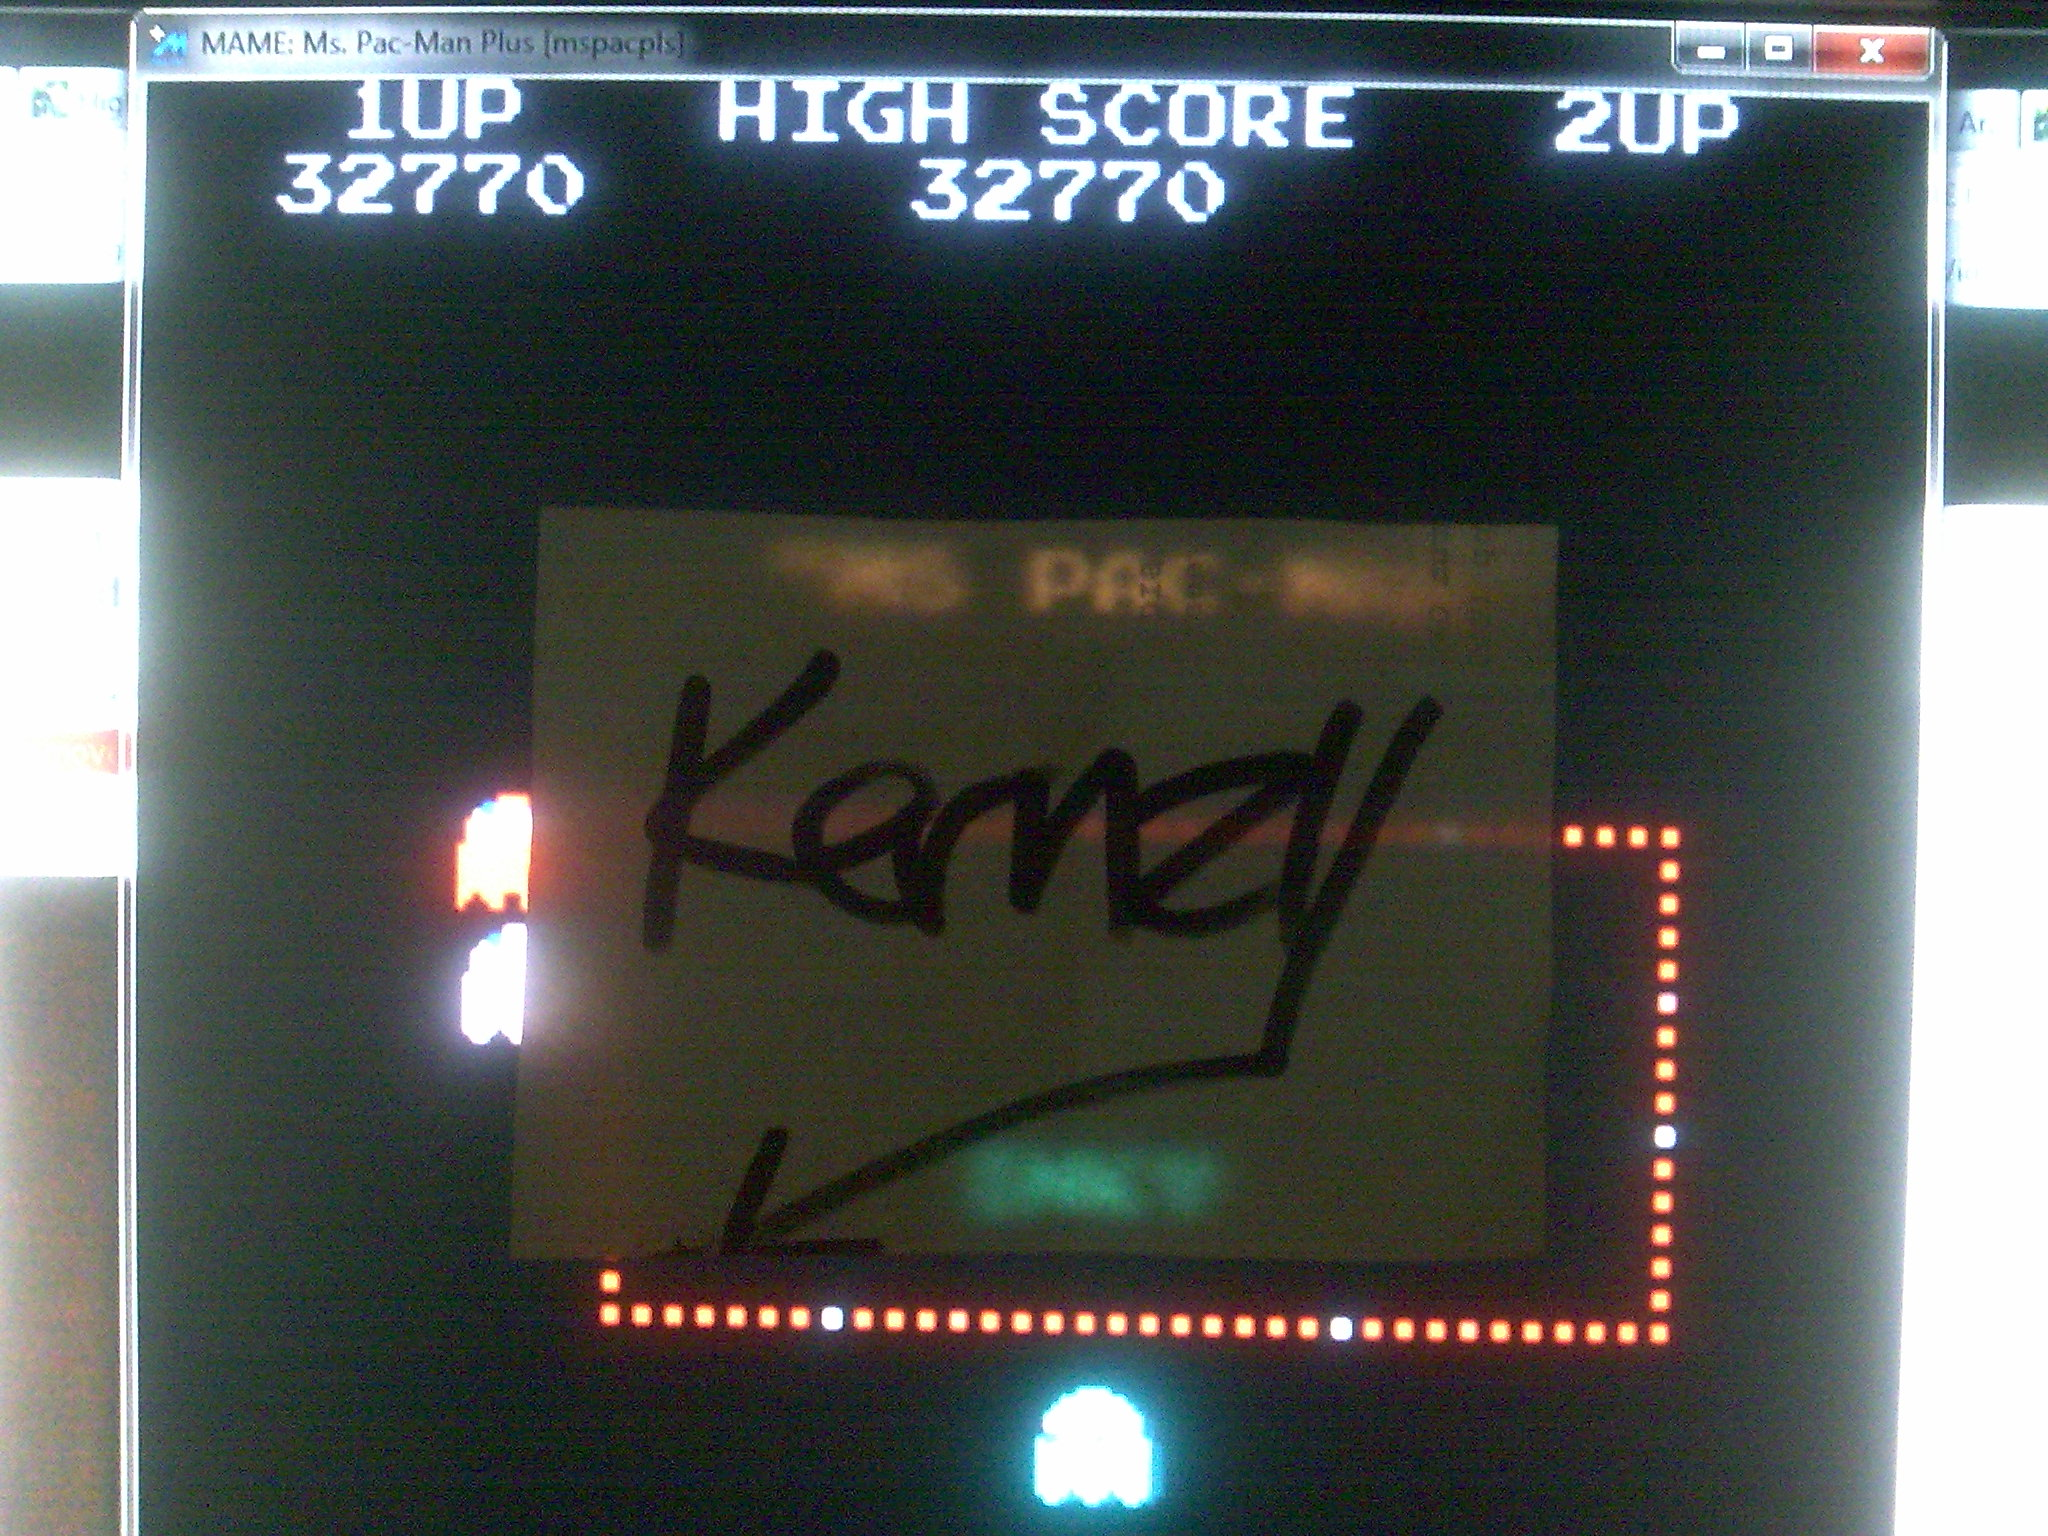 kernzy: Ms. Pac-Man Plus [mspacpls] (Arcade Emulated / M.A.M.E.) 39,070 points on 2014-08-27 08:02:07